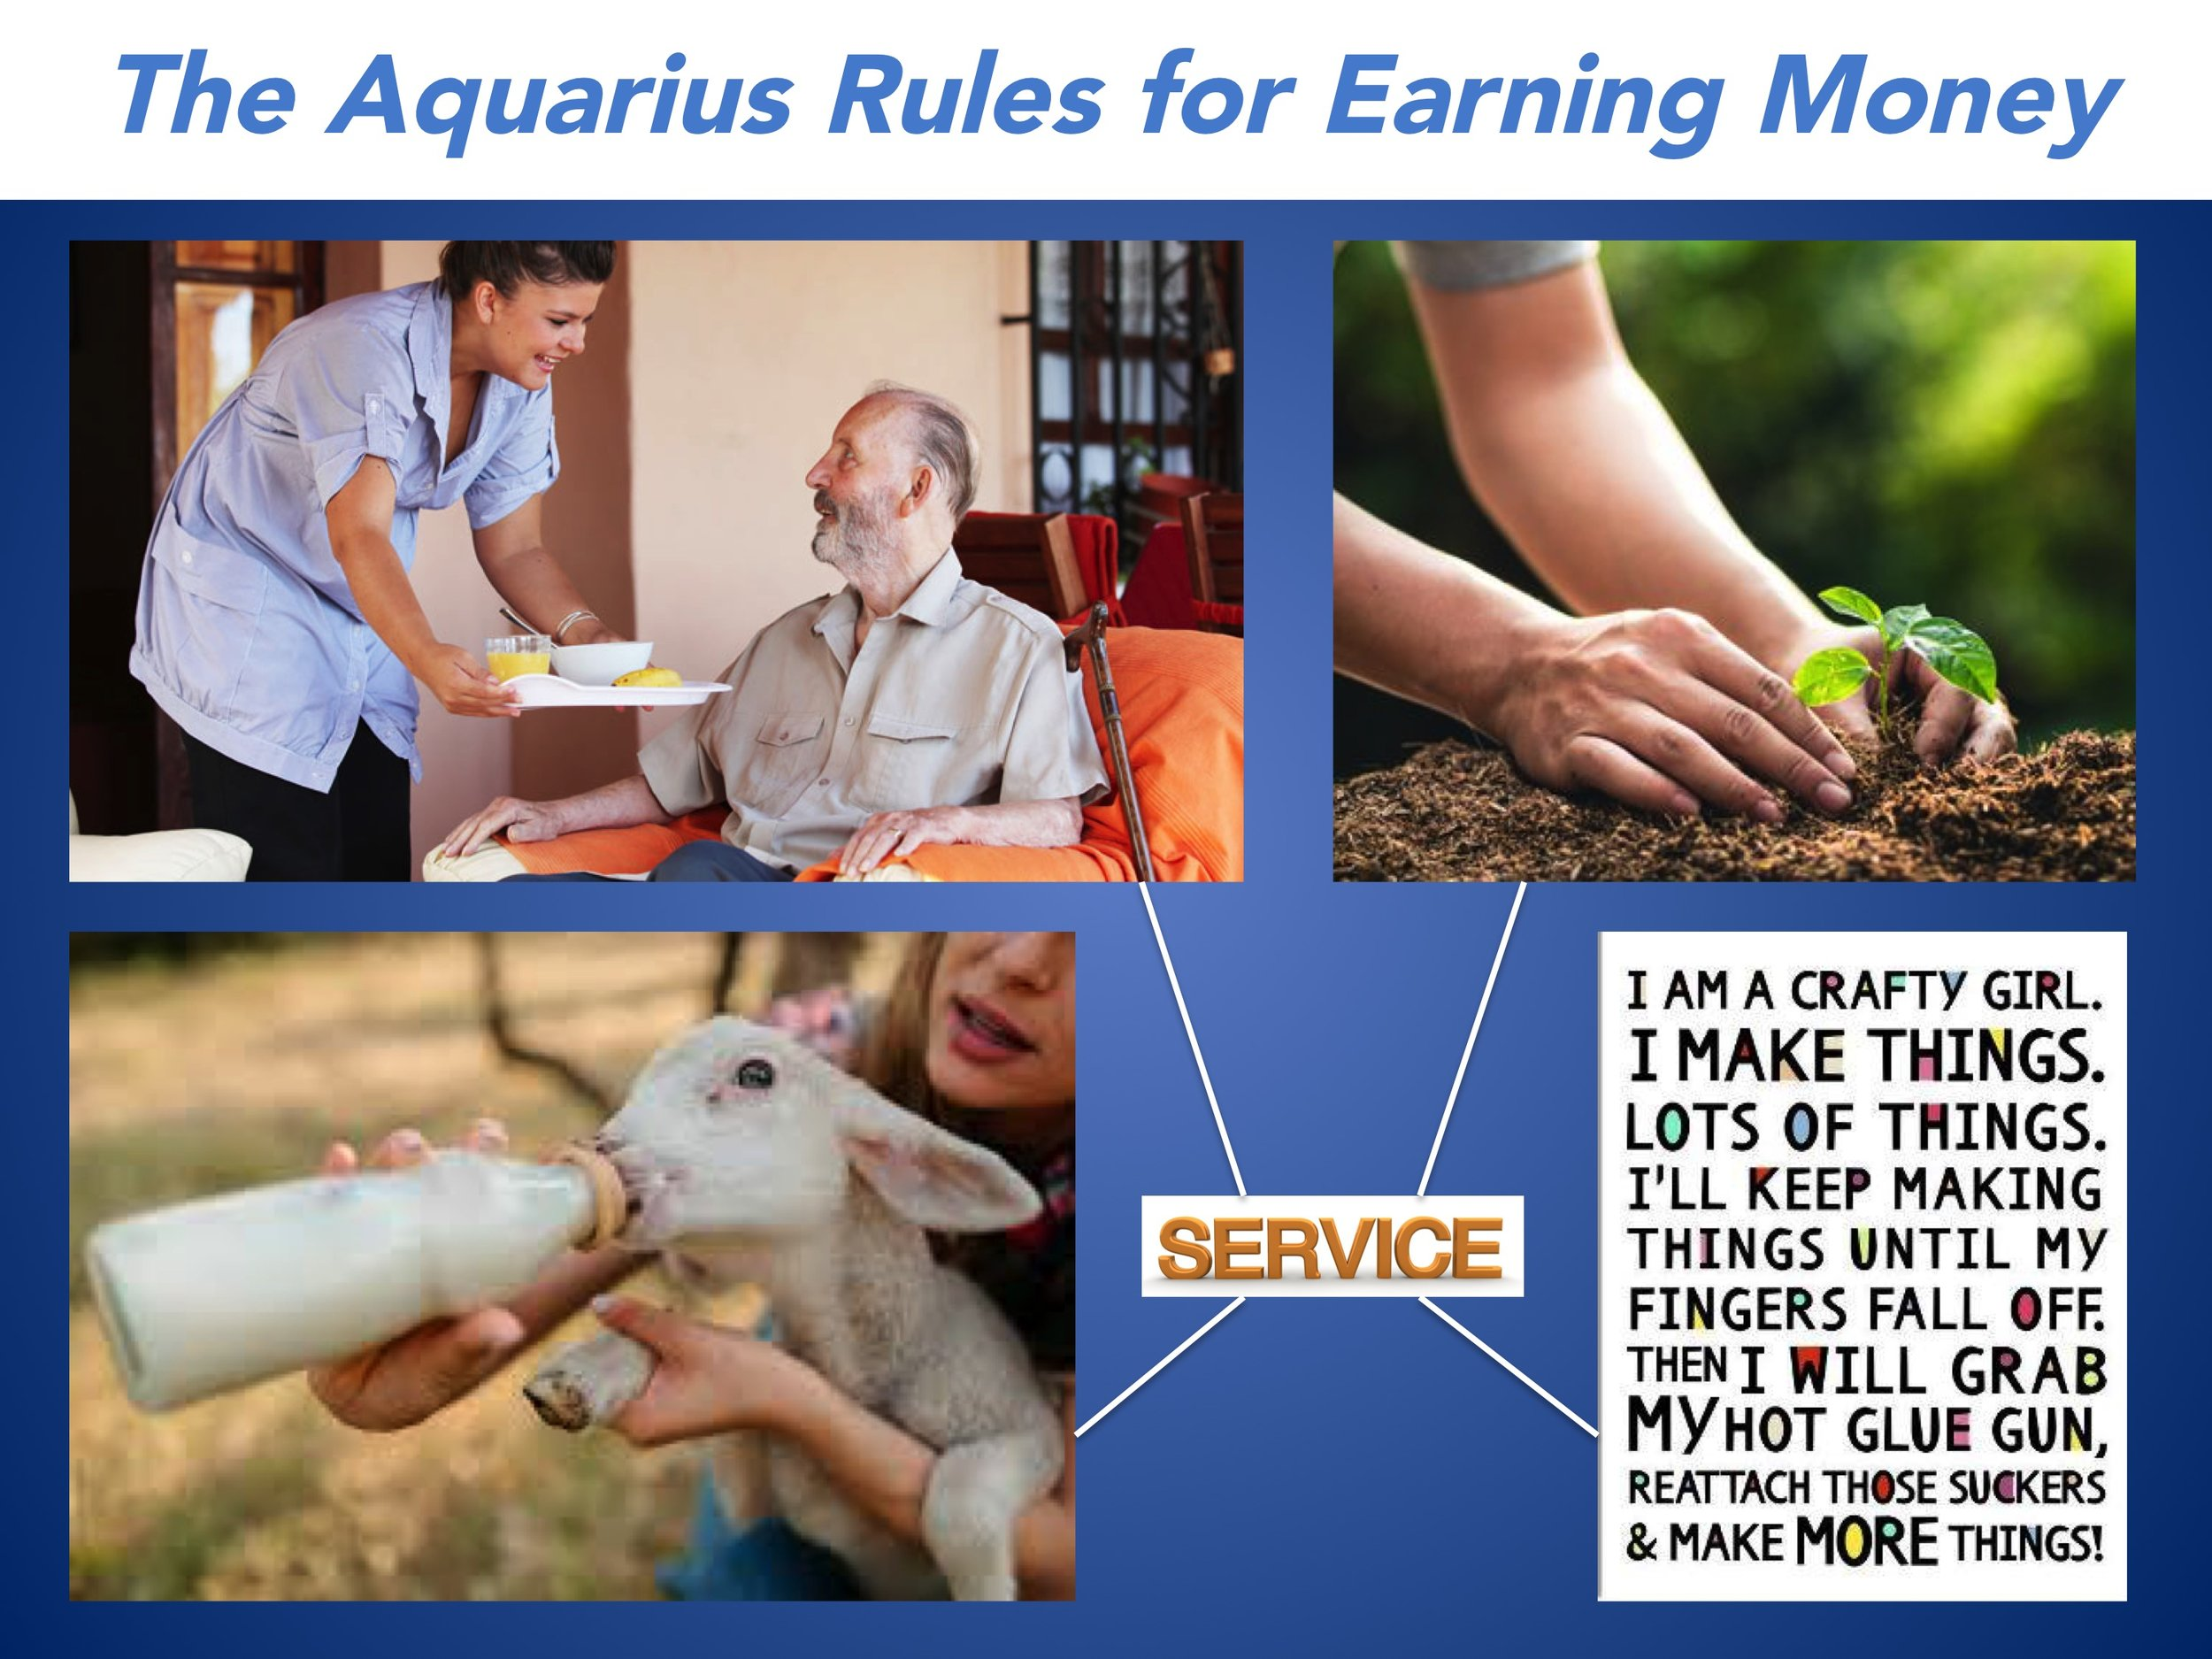 Aquarius promotes a service based economy in which humans serve others to earn money in the form of an ecological footprint allowance. To ensure that everyone is entitled to be treated equally, the reserve for the Aquarius money game will be funded by individual contributions of exactly $101 each.